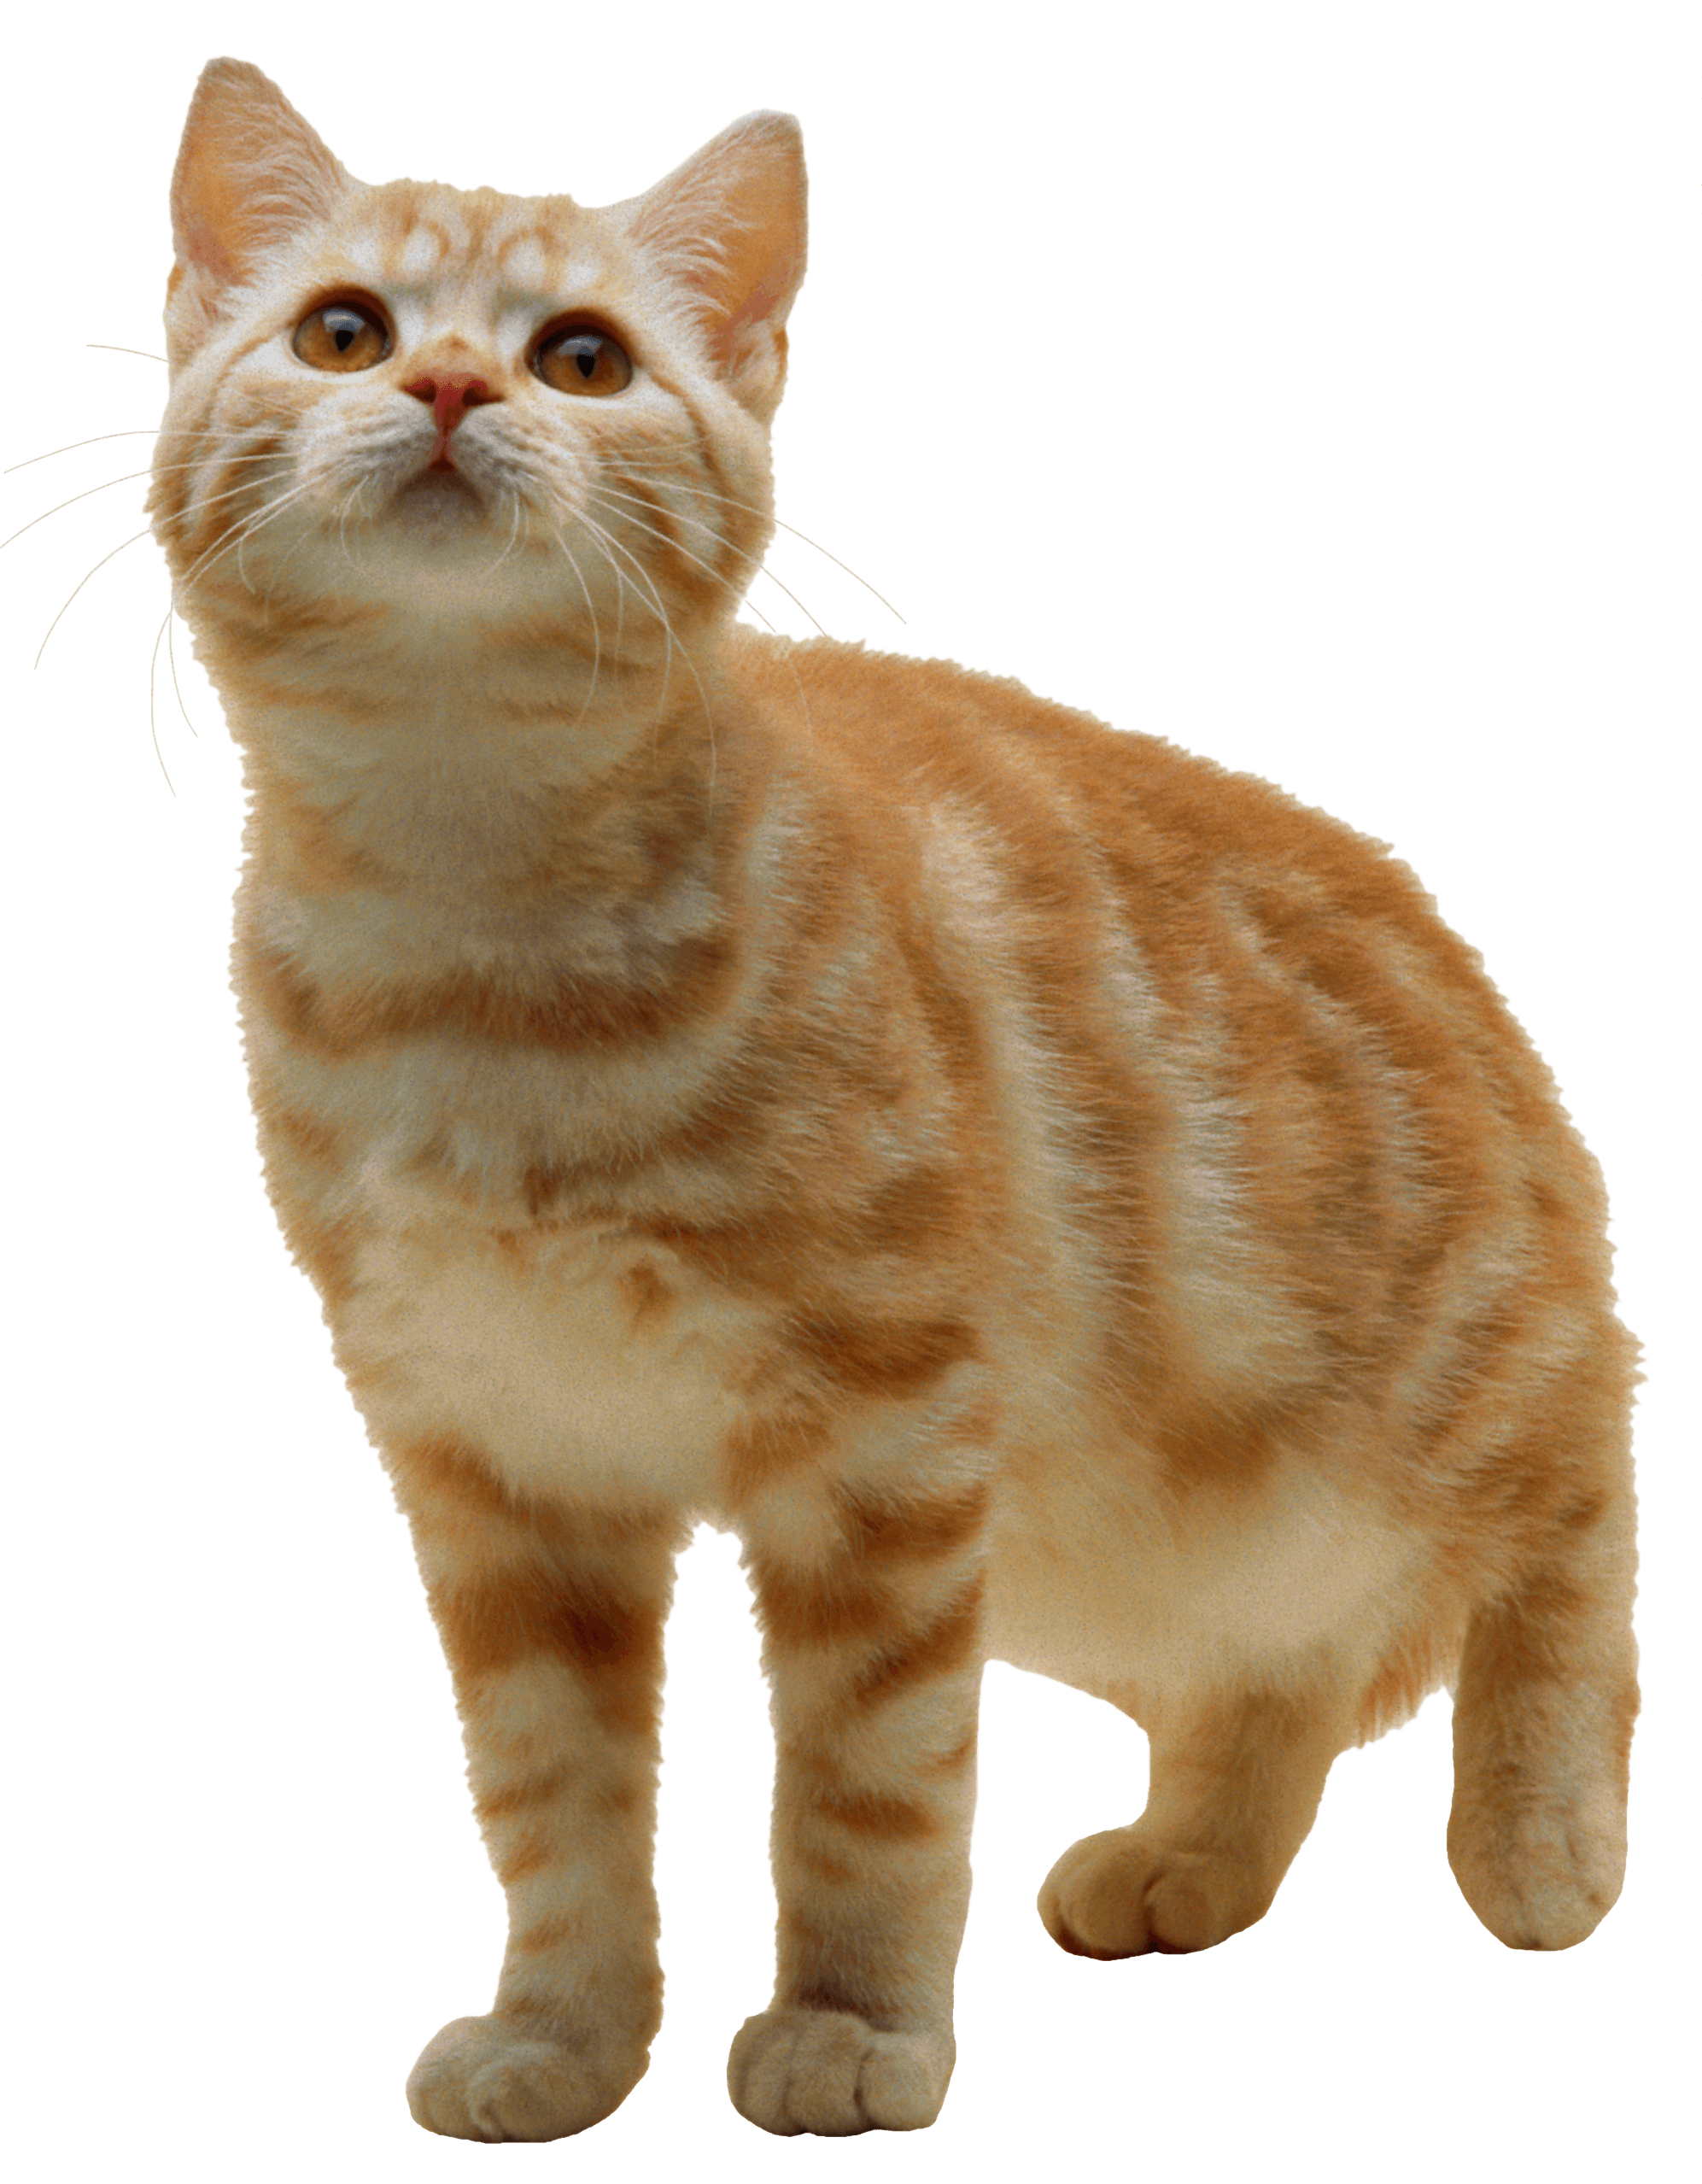 Orange tabby cat clipart banner download Cats png free images, download banner download